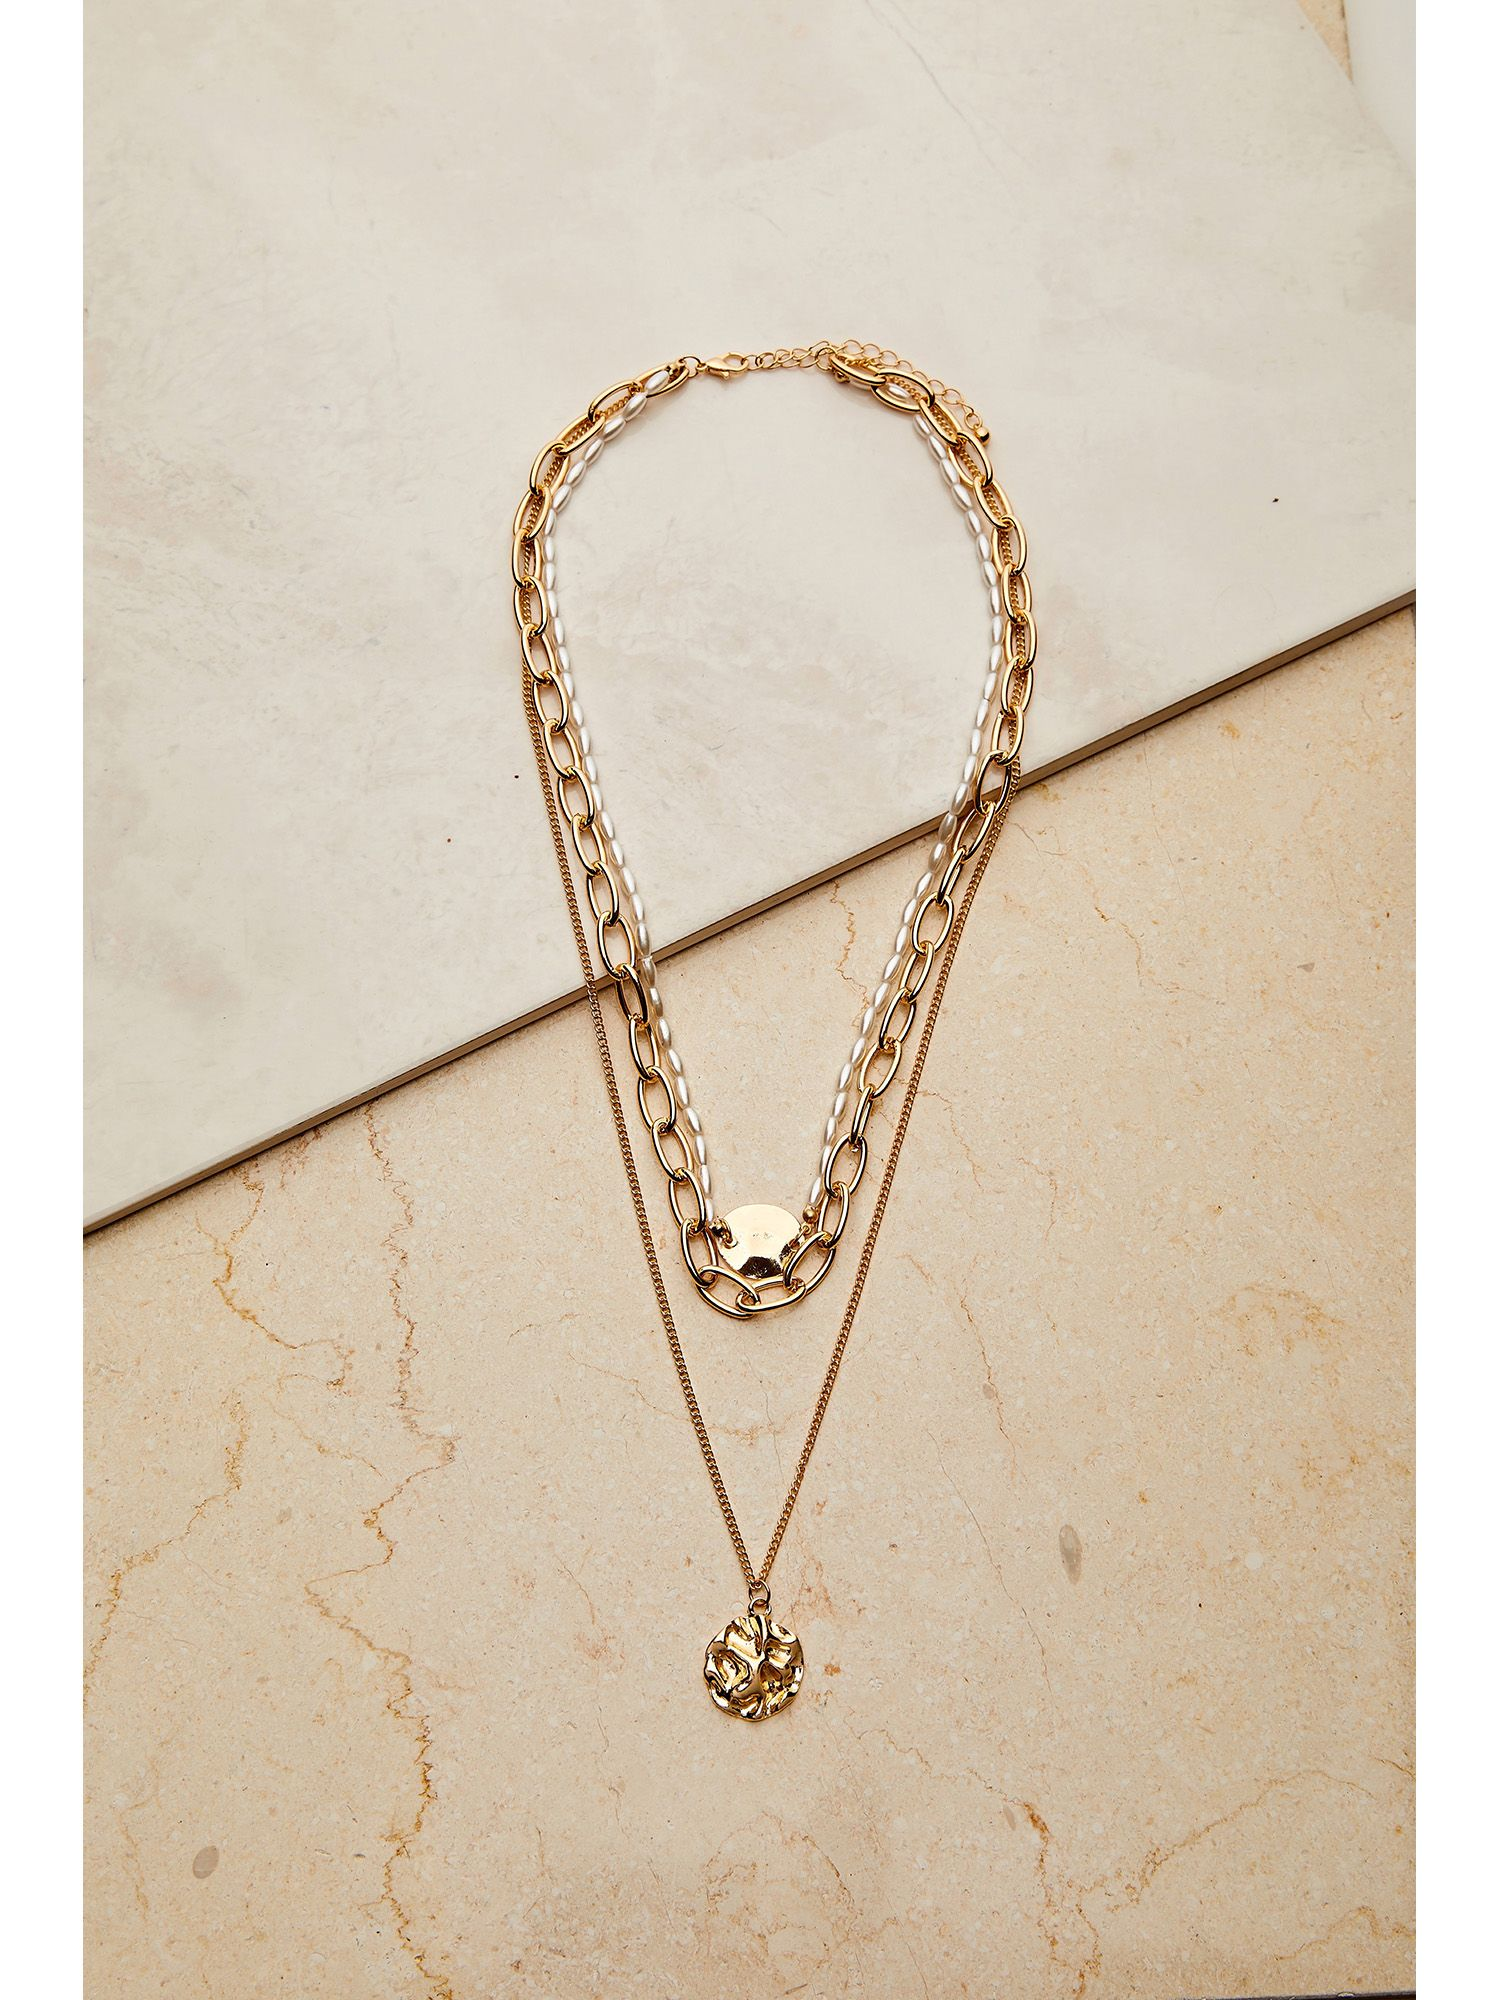 3 X Chain Necklace With Hammered Coin Pe